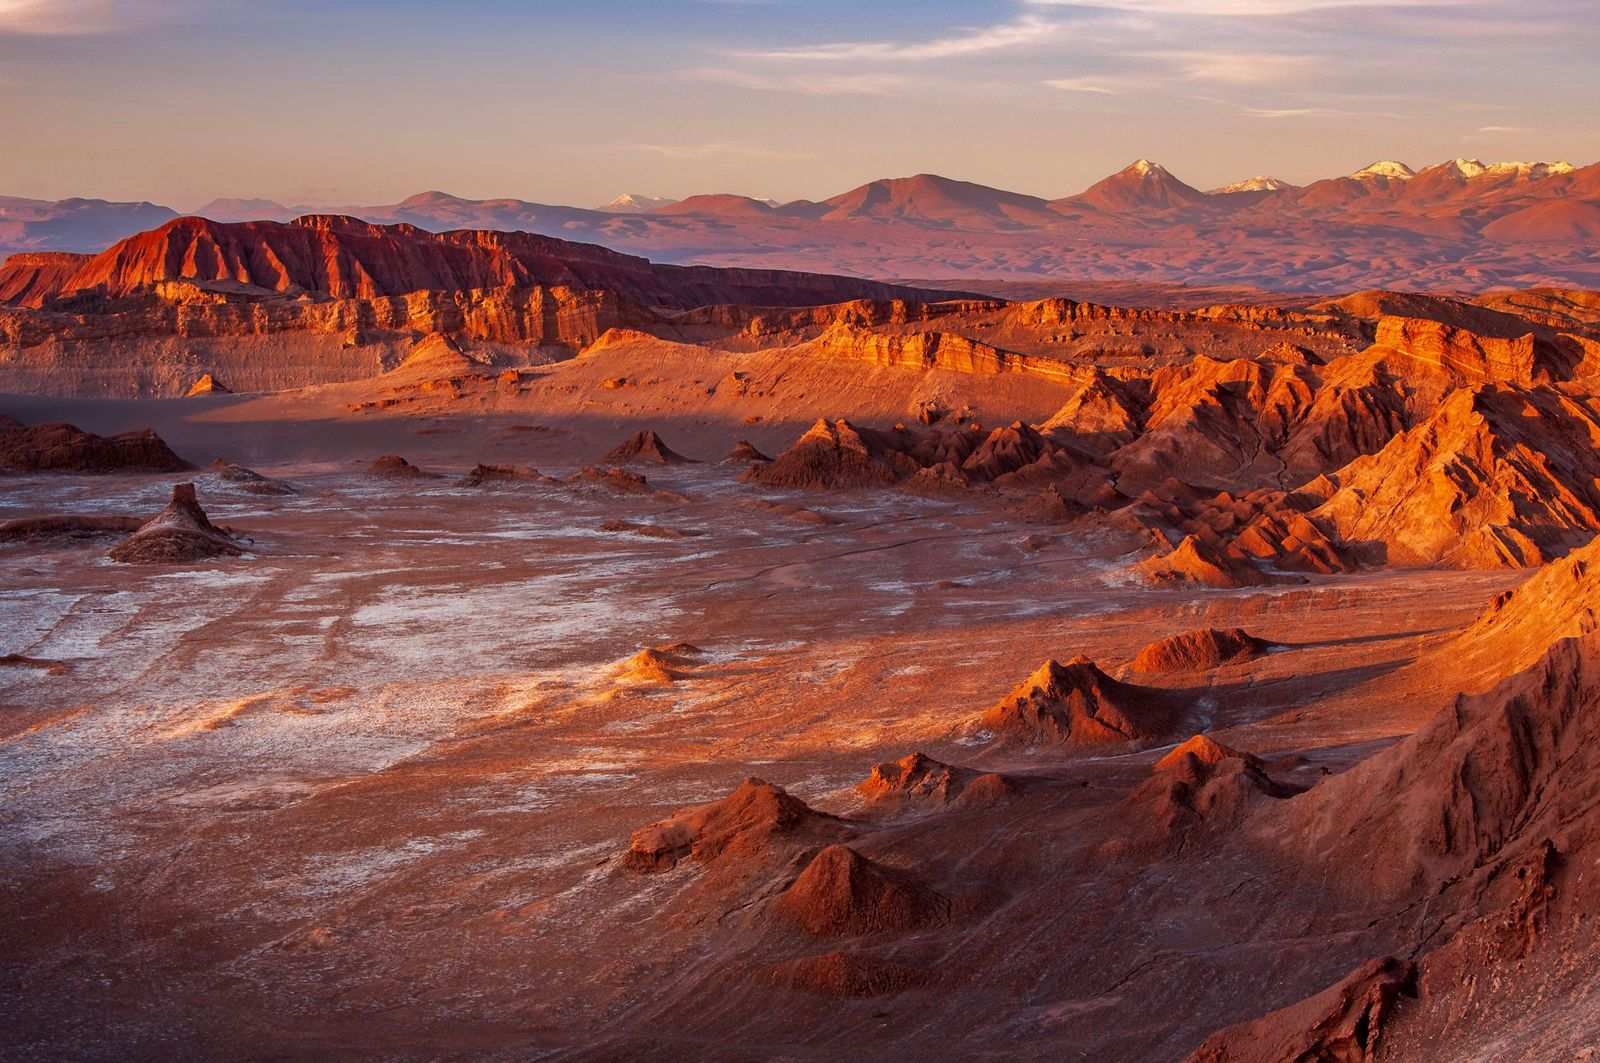 Golden sunset light casting strong shadow on the eerie moonscape at the Moon Valley, Atacama desert, Chile.